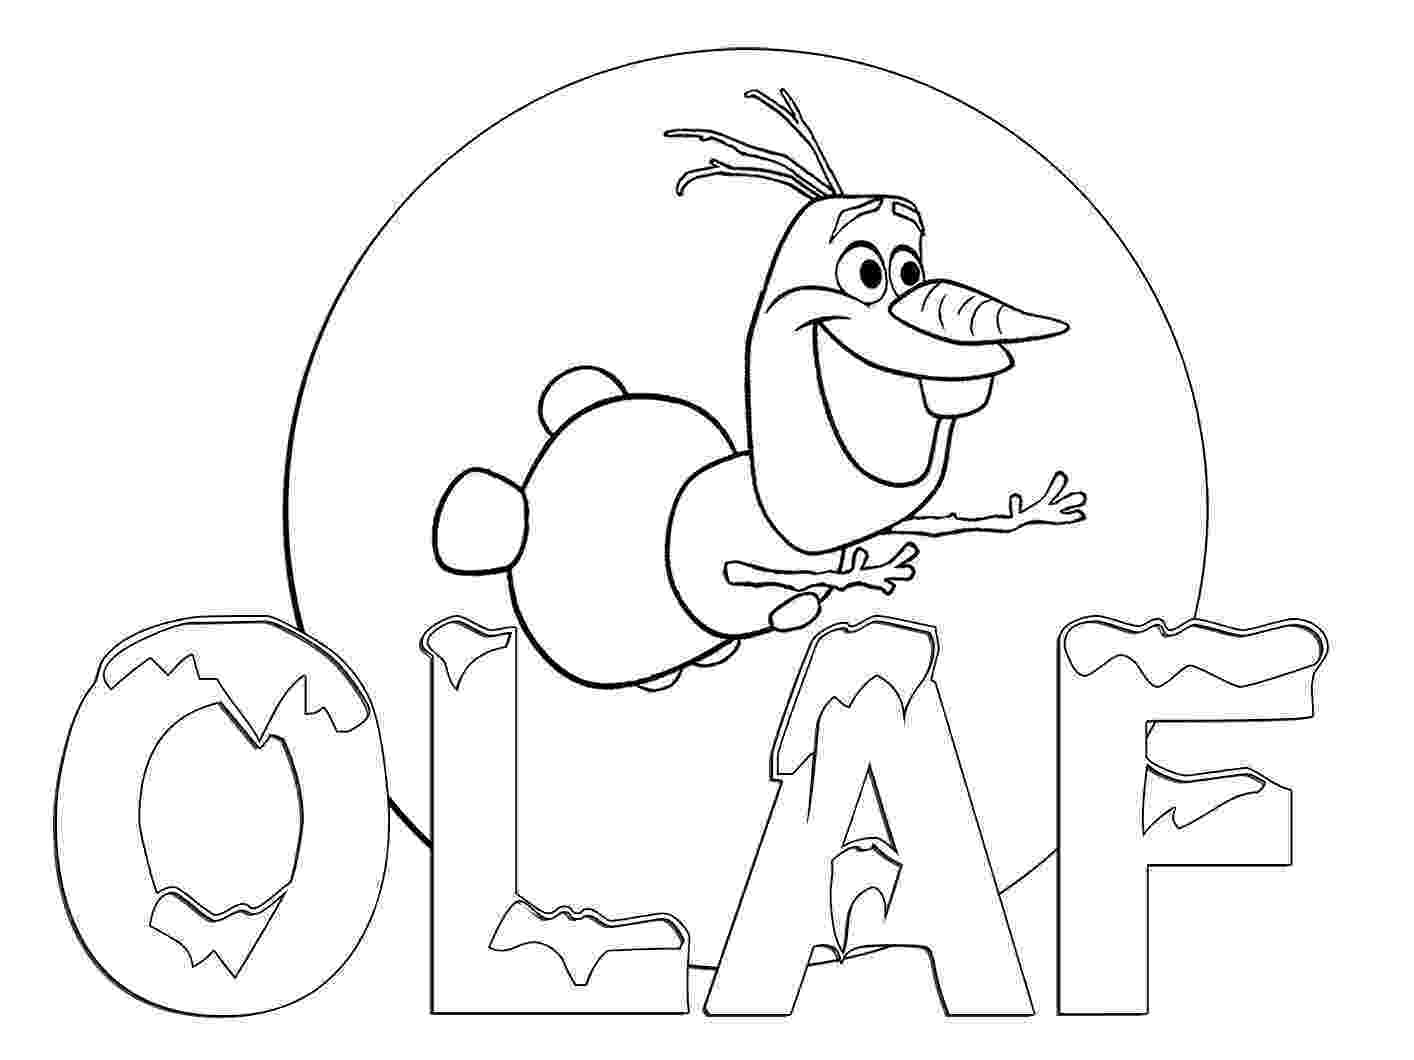 olaf coloring disney39s frozen coloring pages 3 disneyclipscom olaf coloring